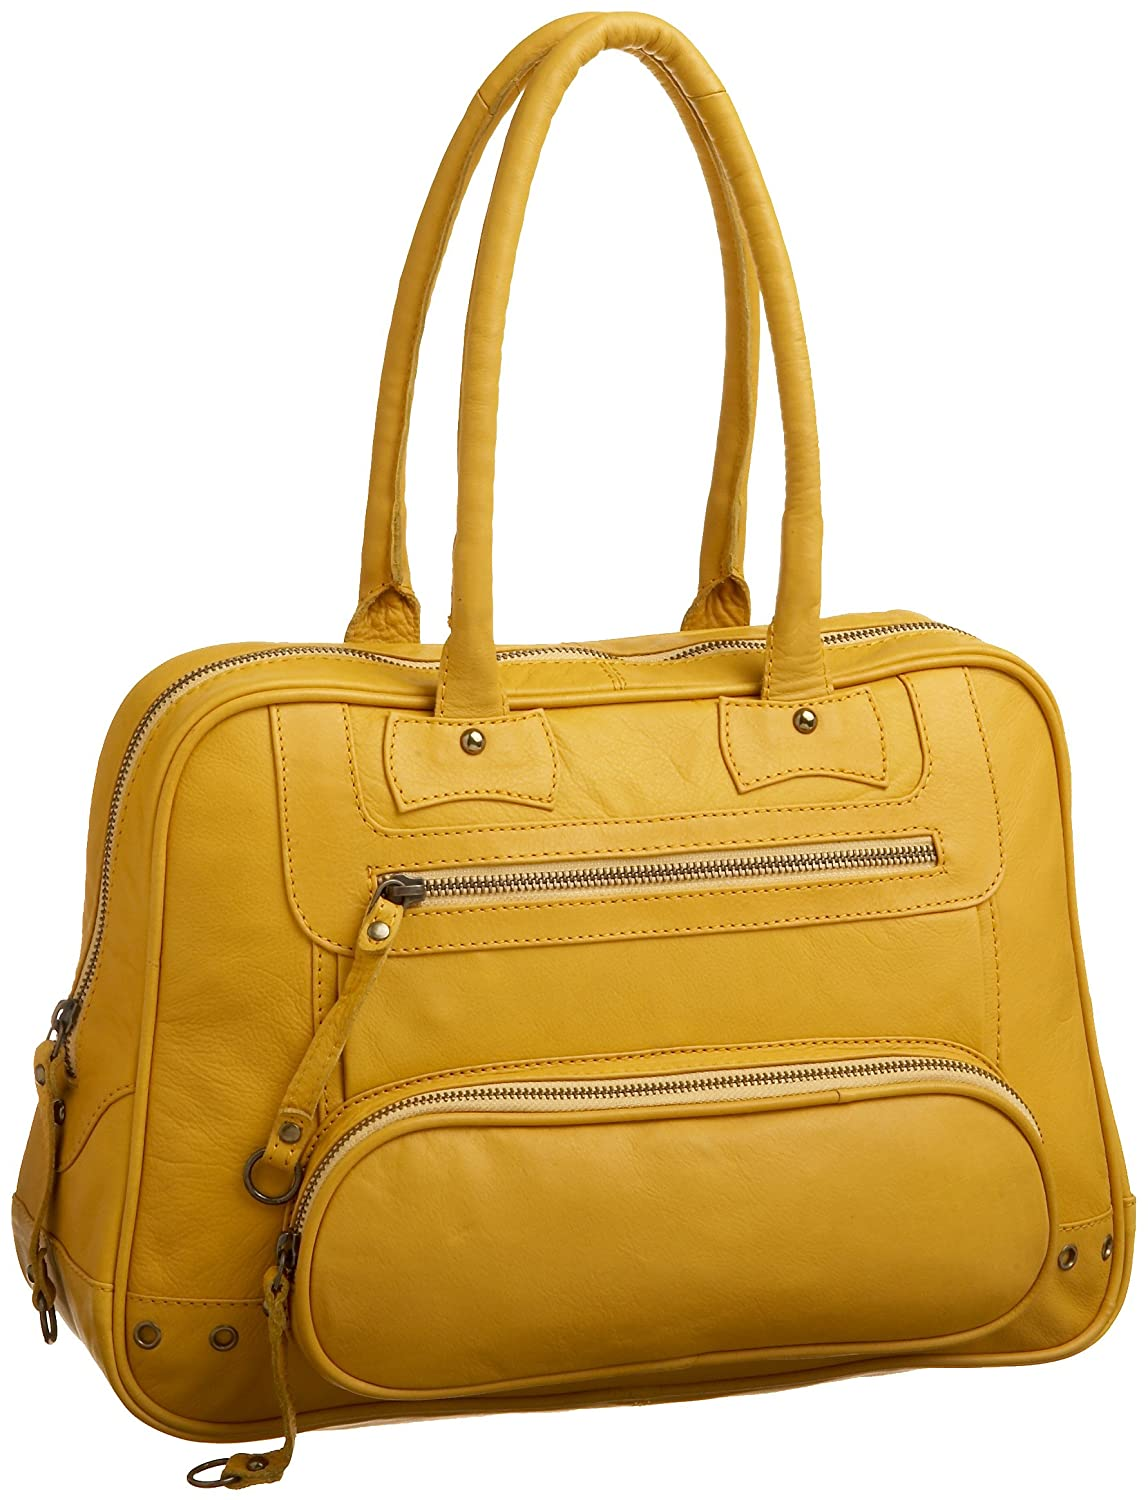 Latico Nappa Solid Front Pouch E/W Shoulder Bag - Free Overnight Shipping & Return Shipping: Endless.com :  zippers pockets lined yellow